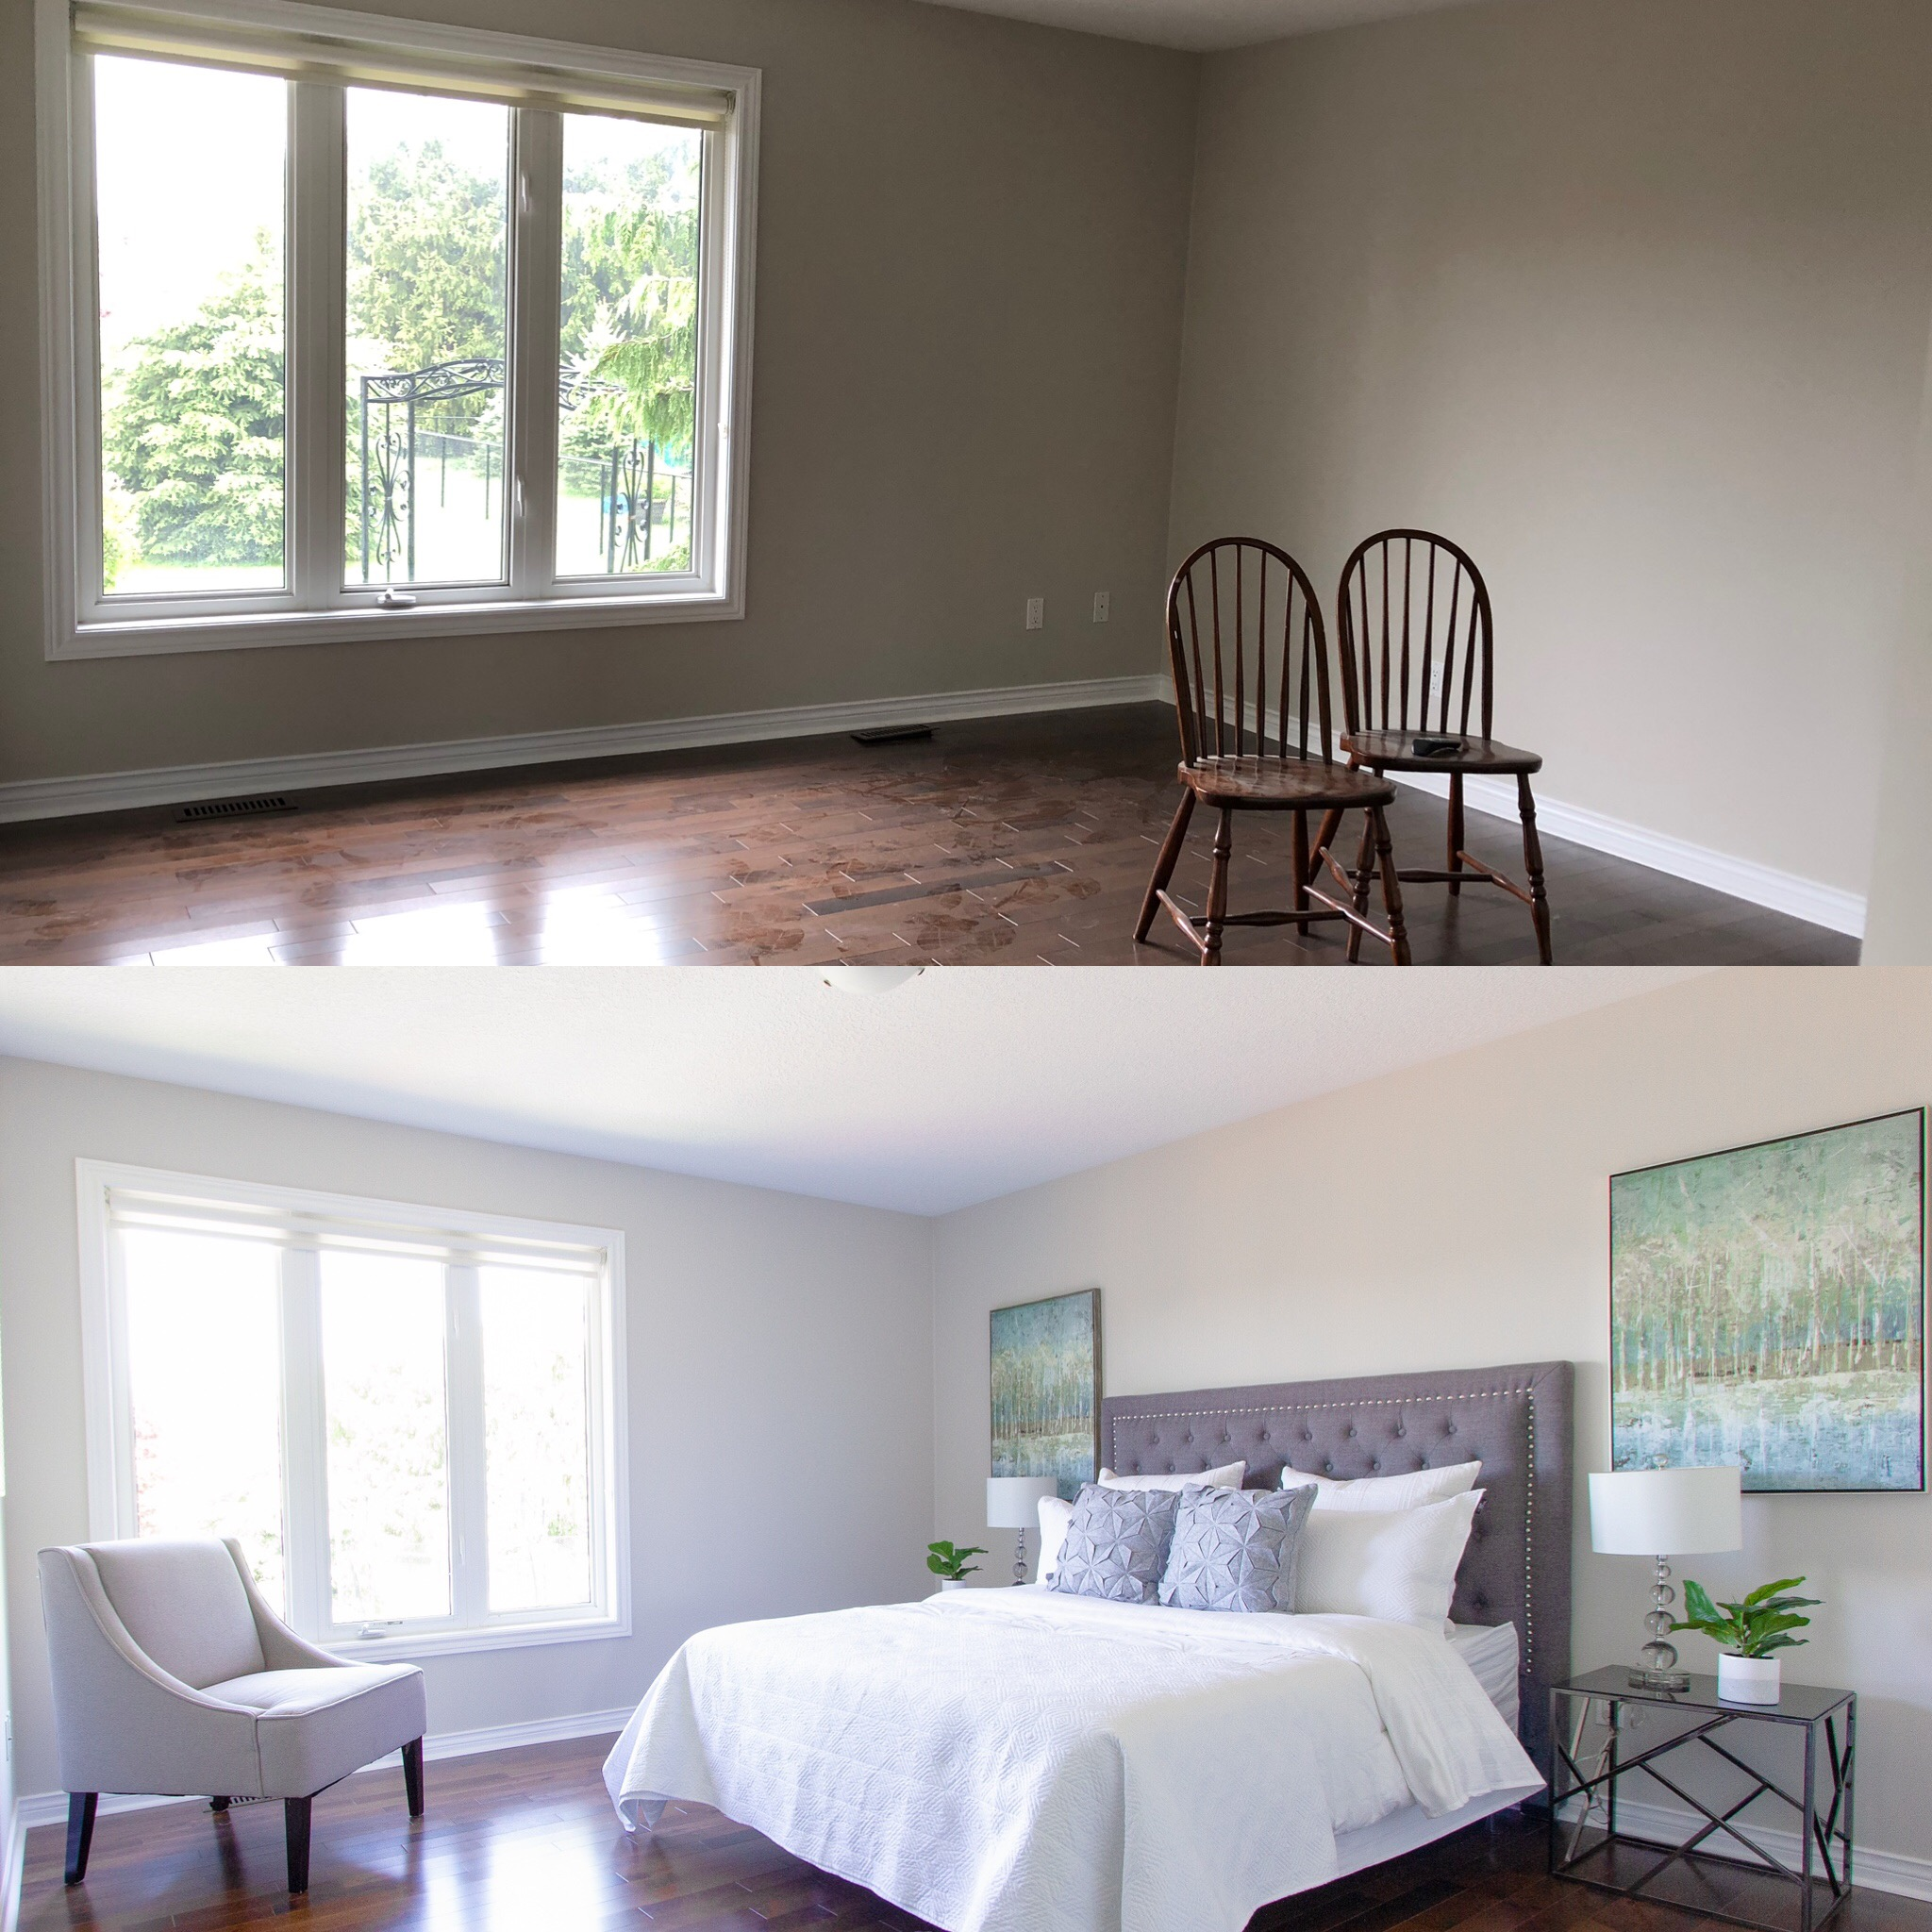 Before & After Master Bedroom